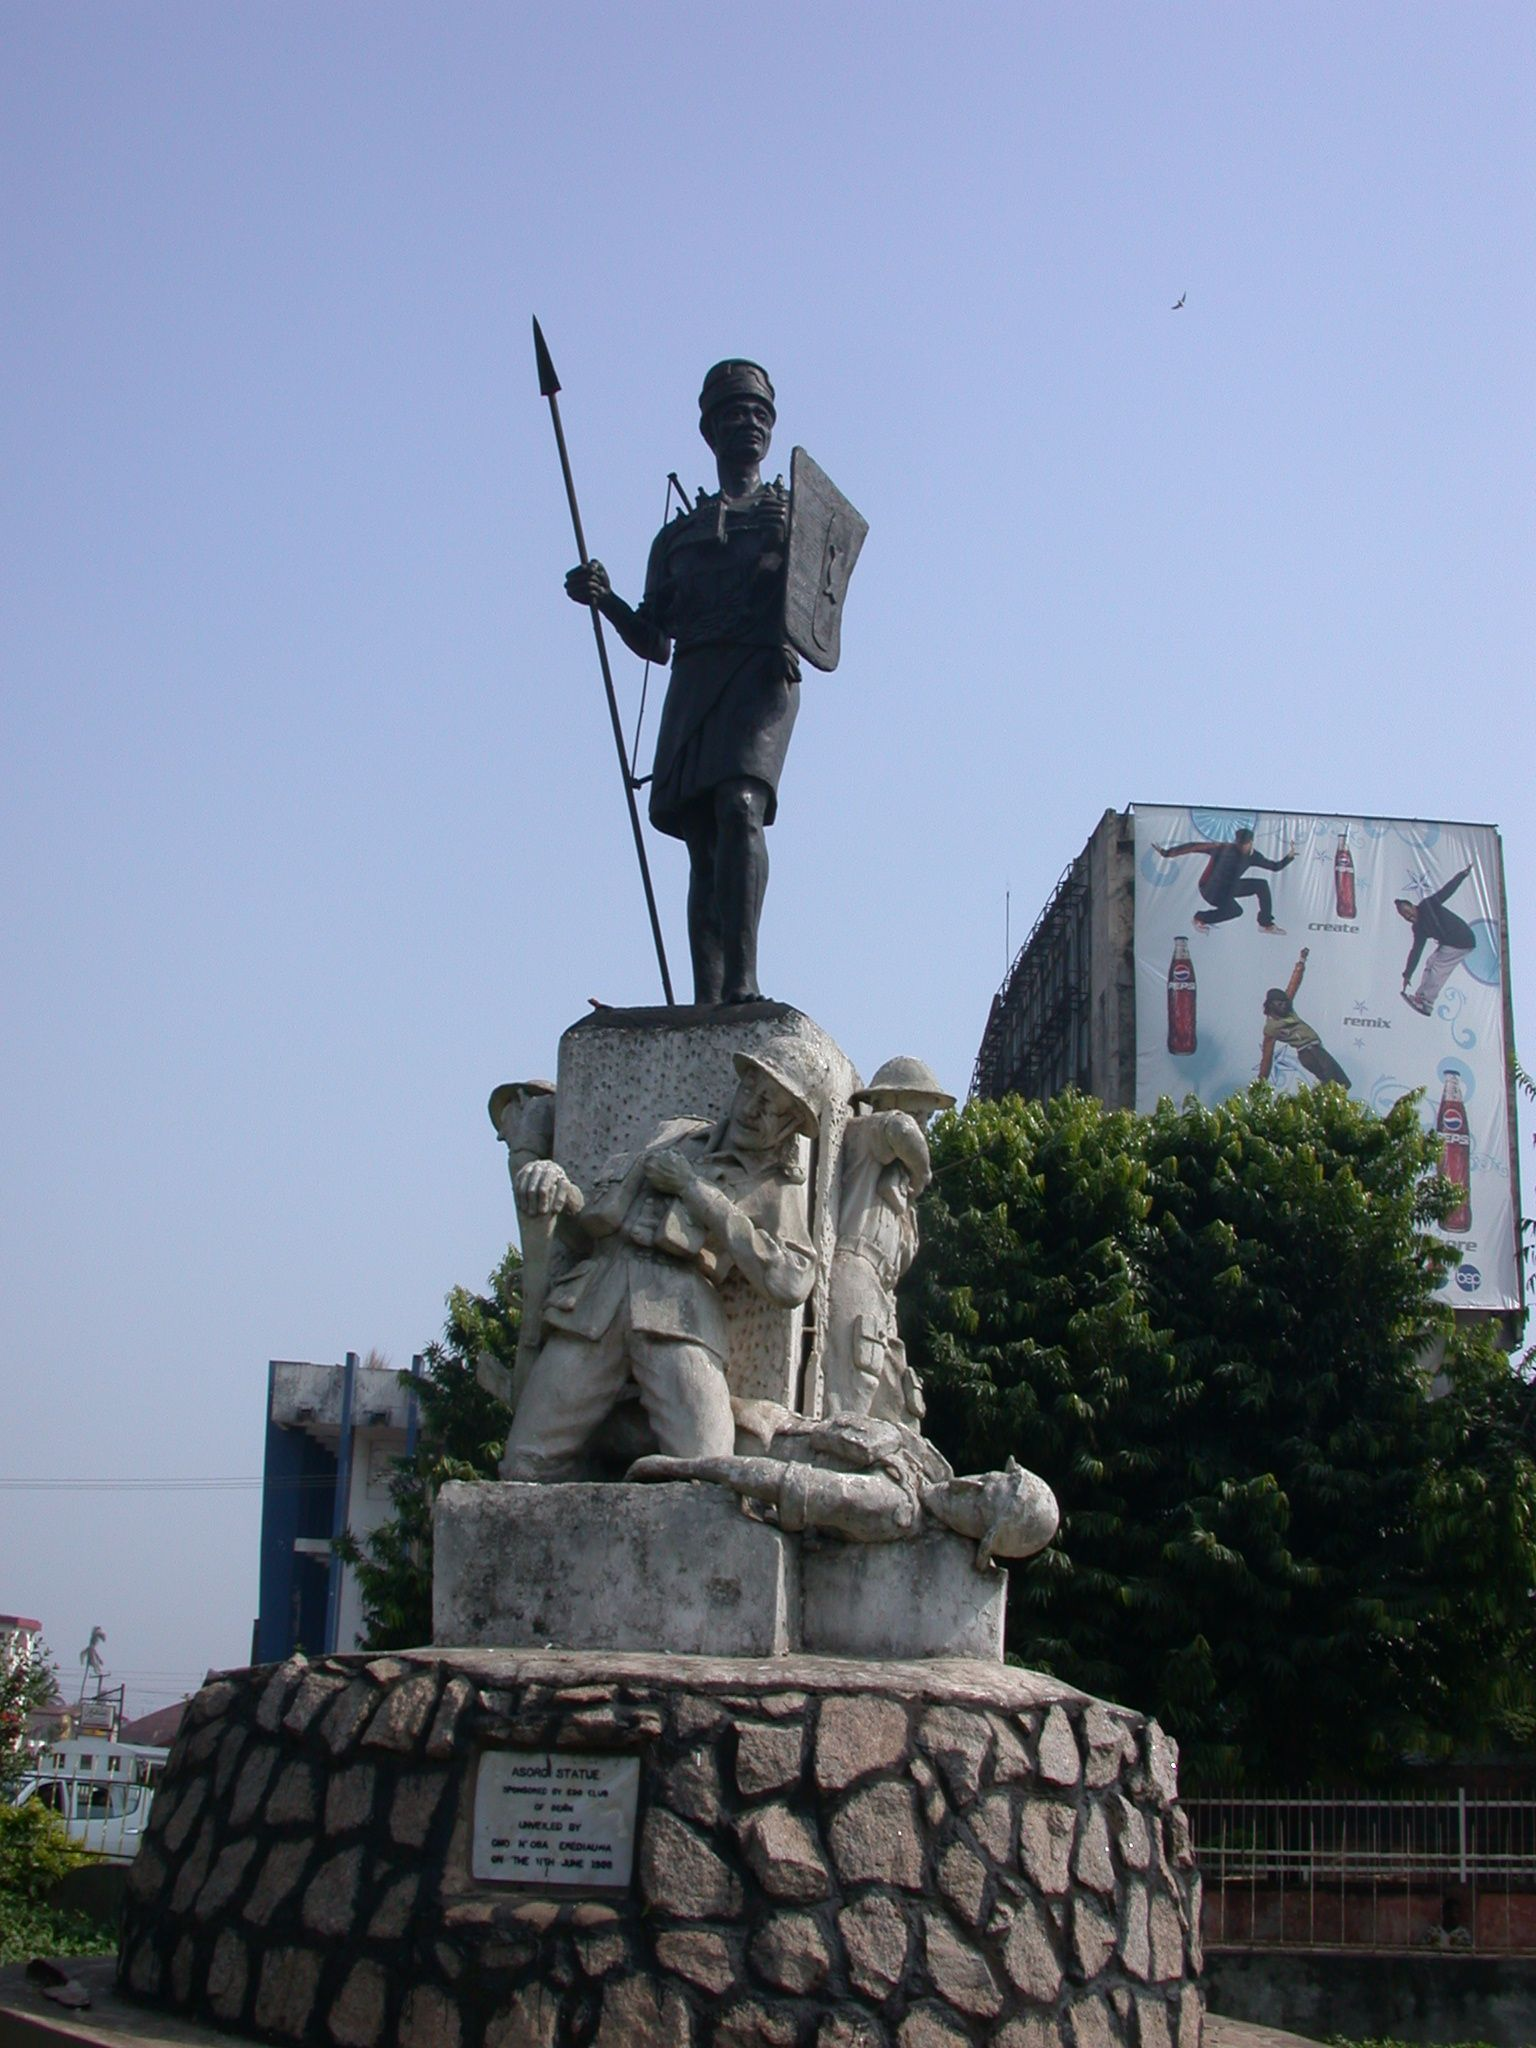 This statue stands in Benin City, Nigeria as a testament to the